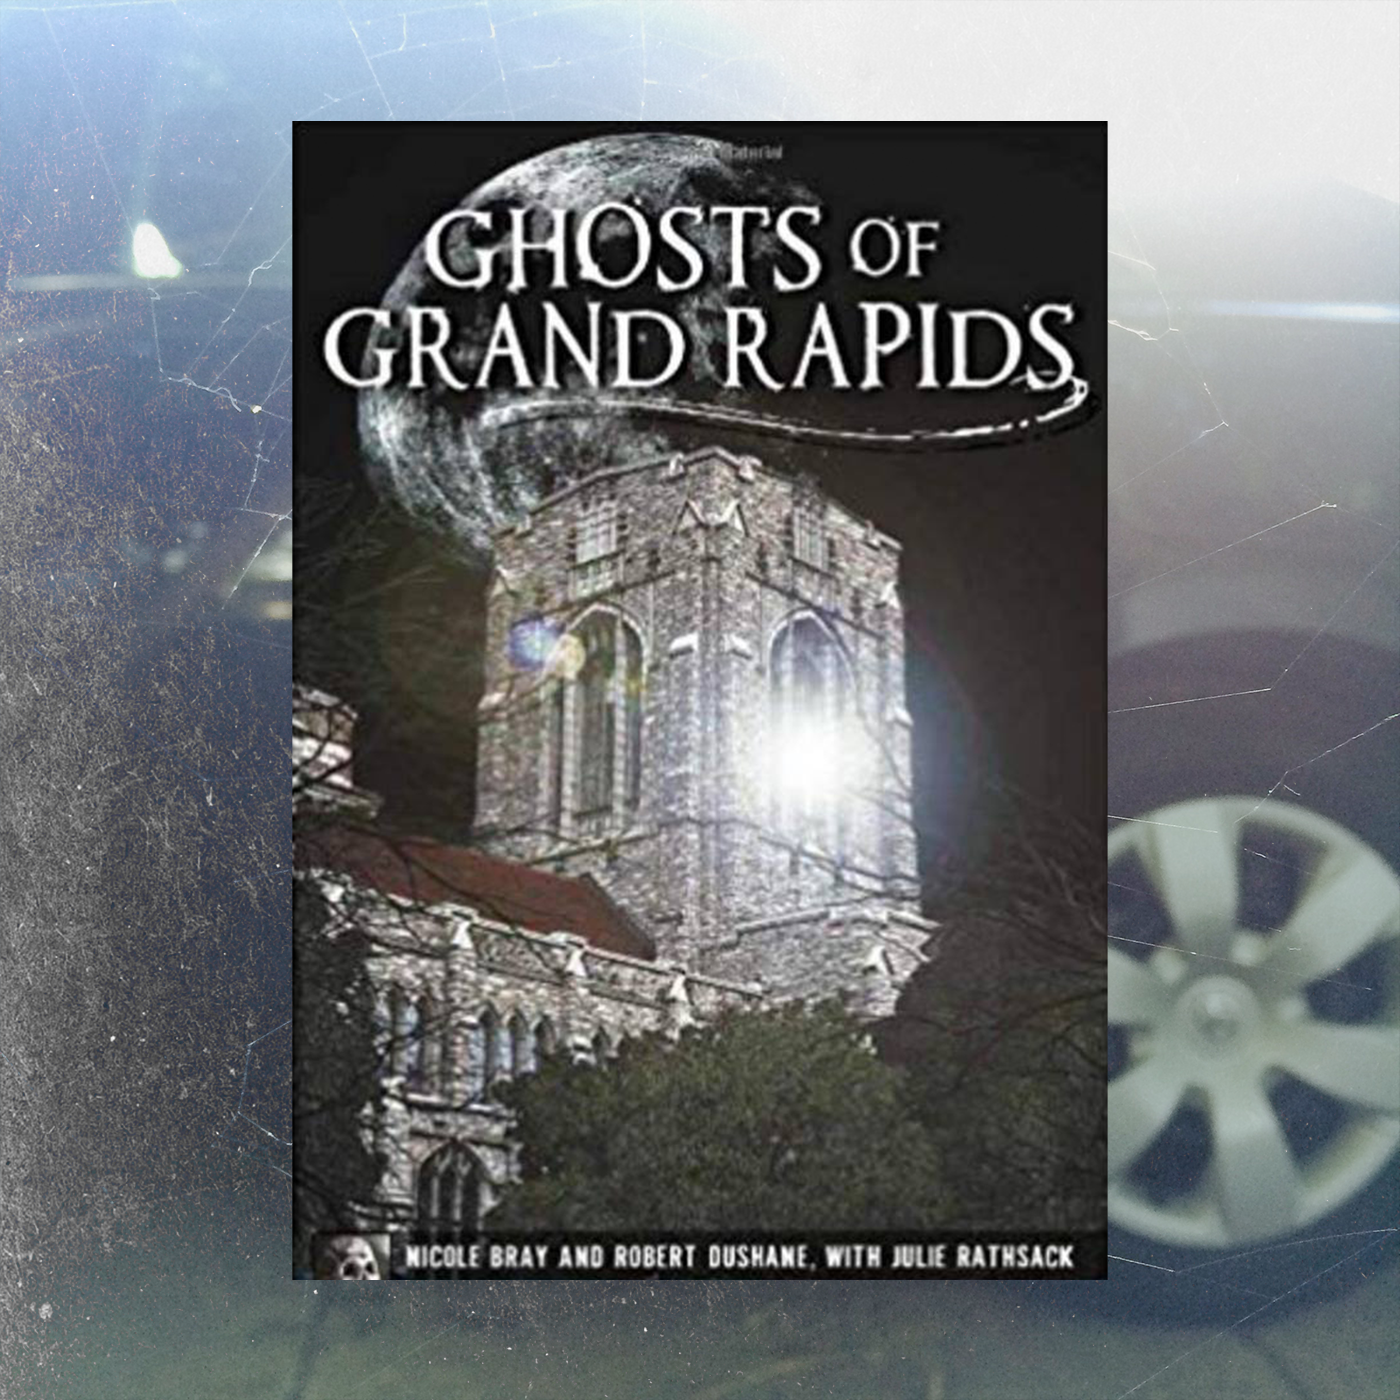 'Ghosts of Grand Rapids' Book Cover